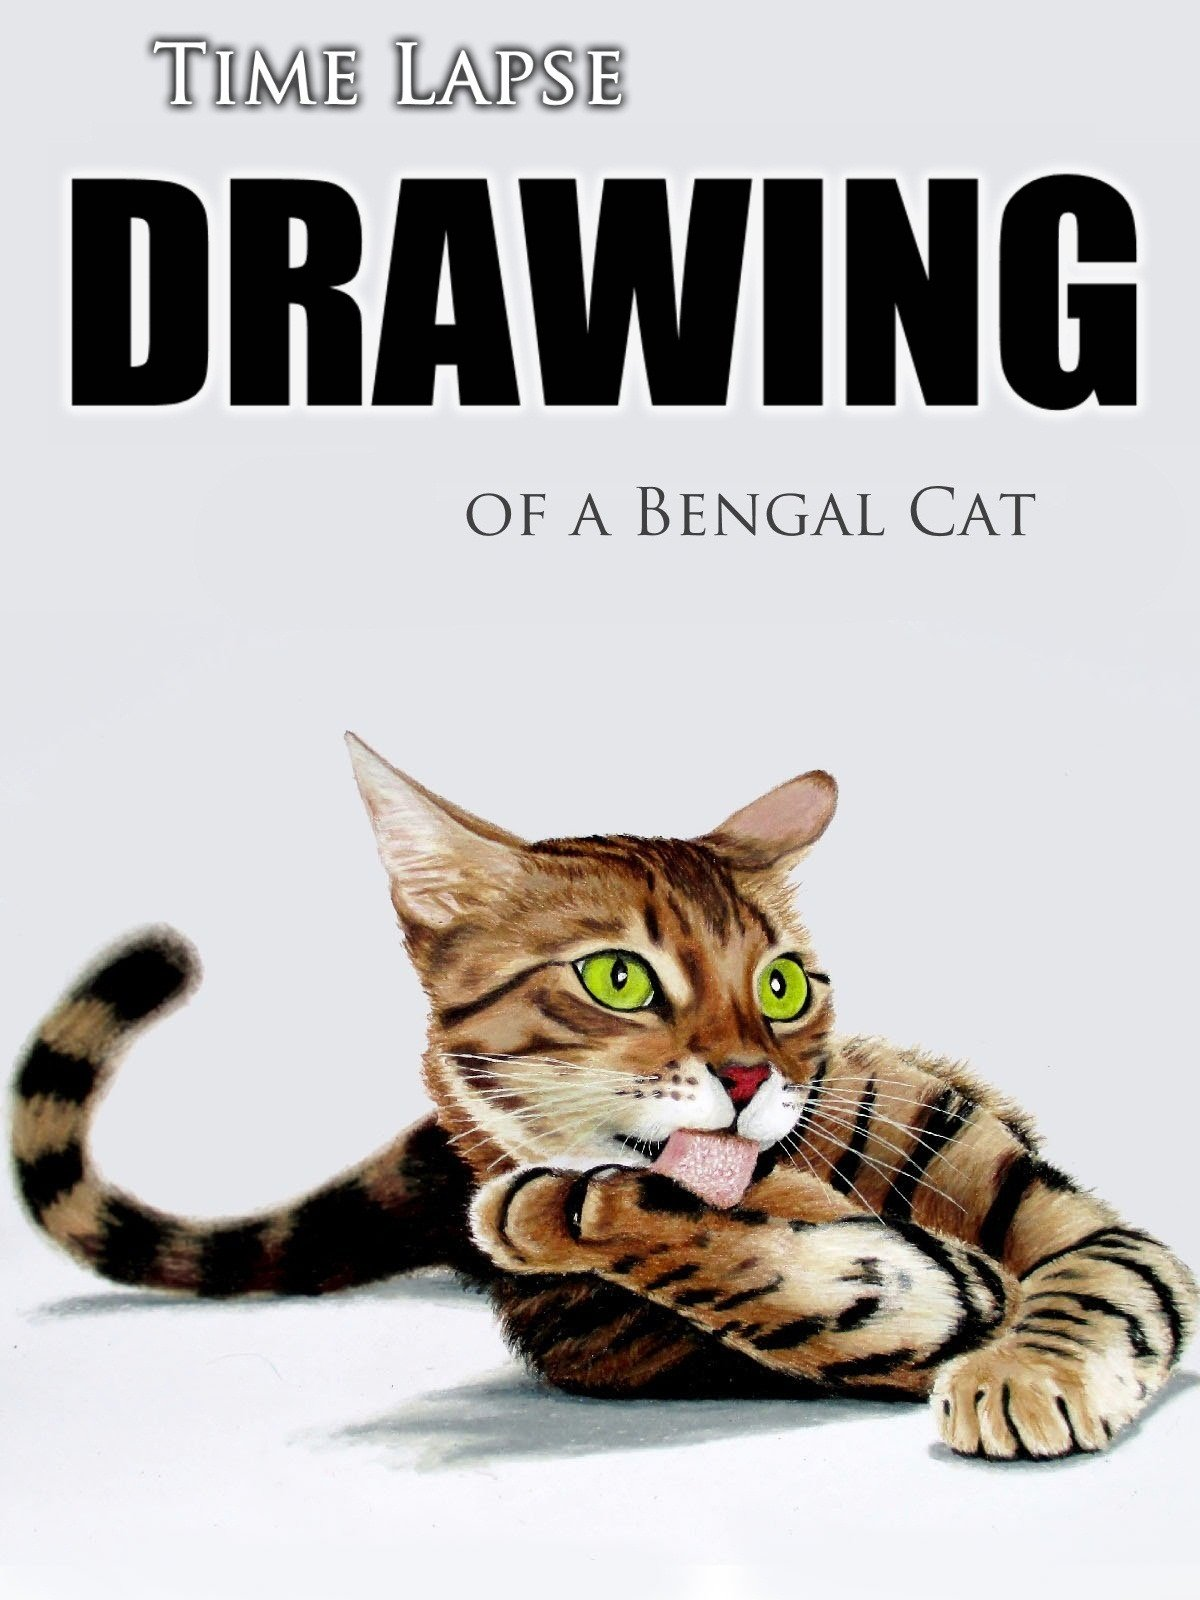 Clip: Time Lapse Drawing of a Bengal Cat